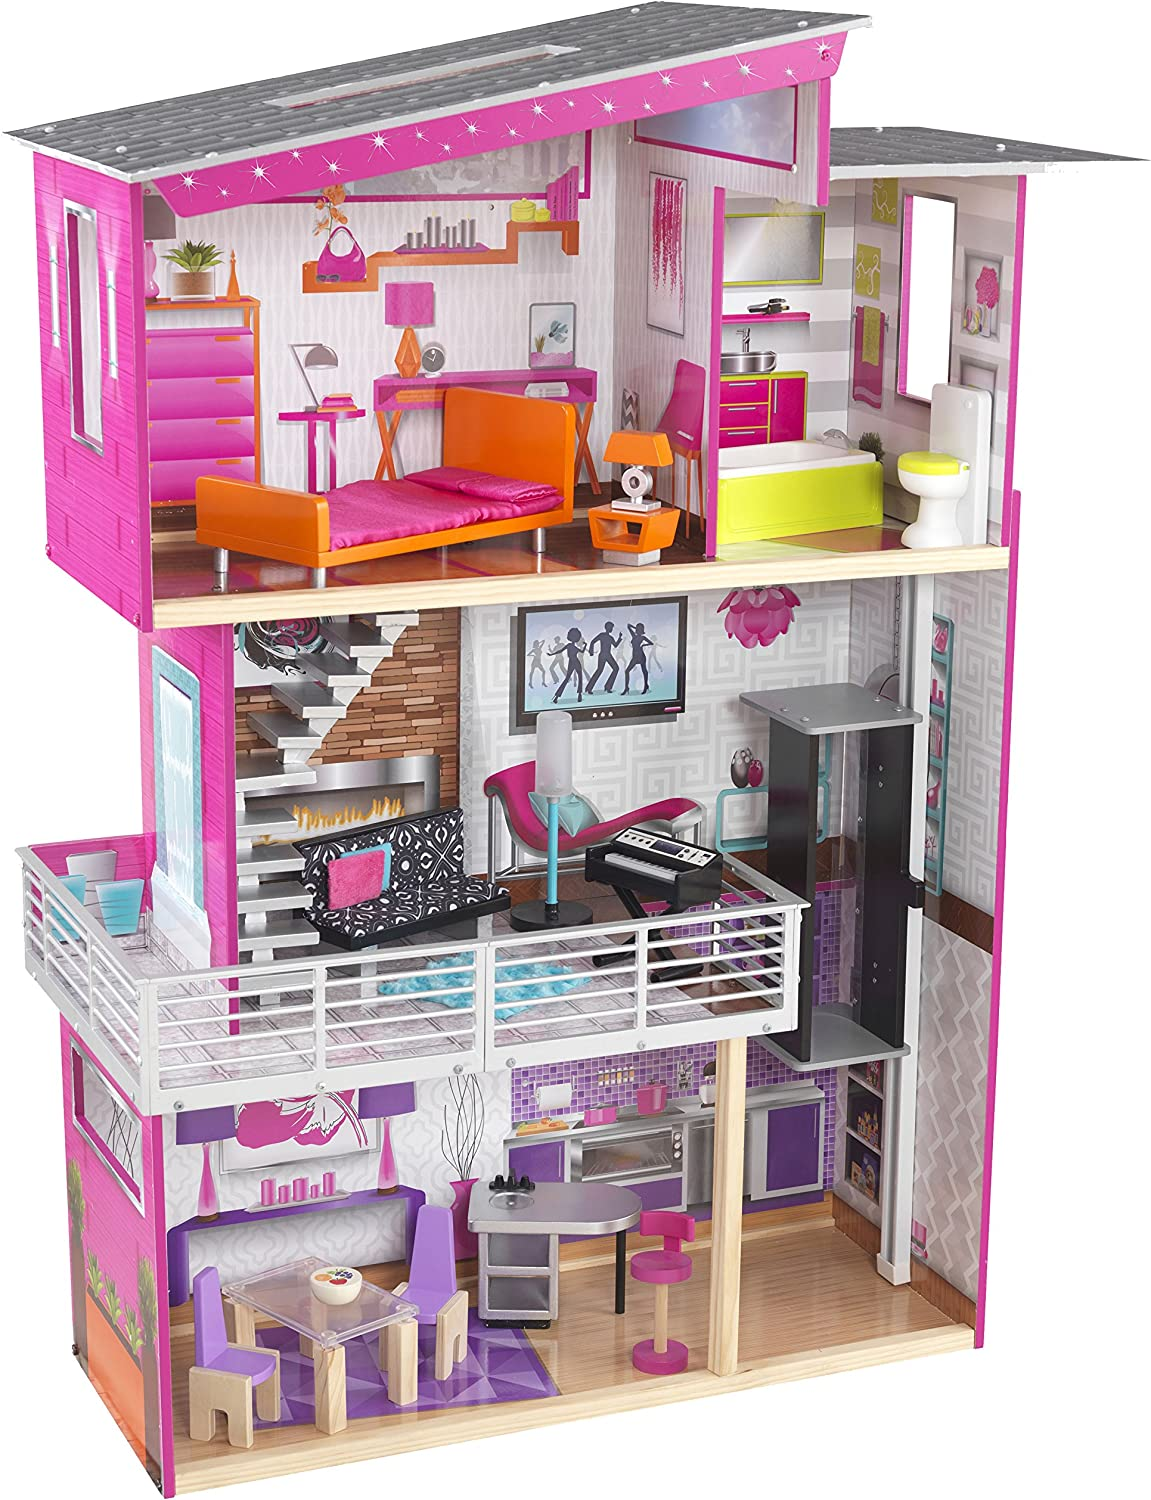 The 10 Best Dollhouse For Toddlers & Little Girls in 2020 6